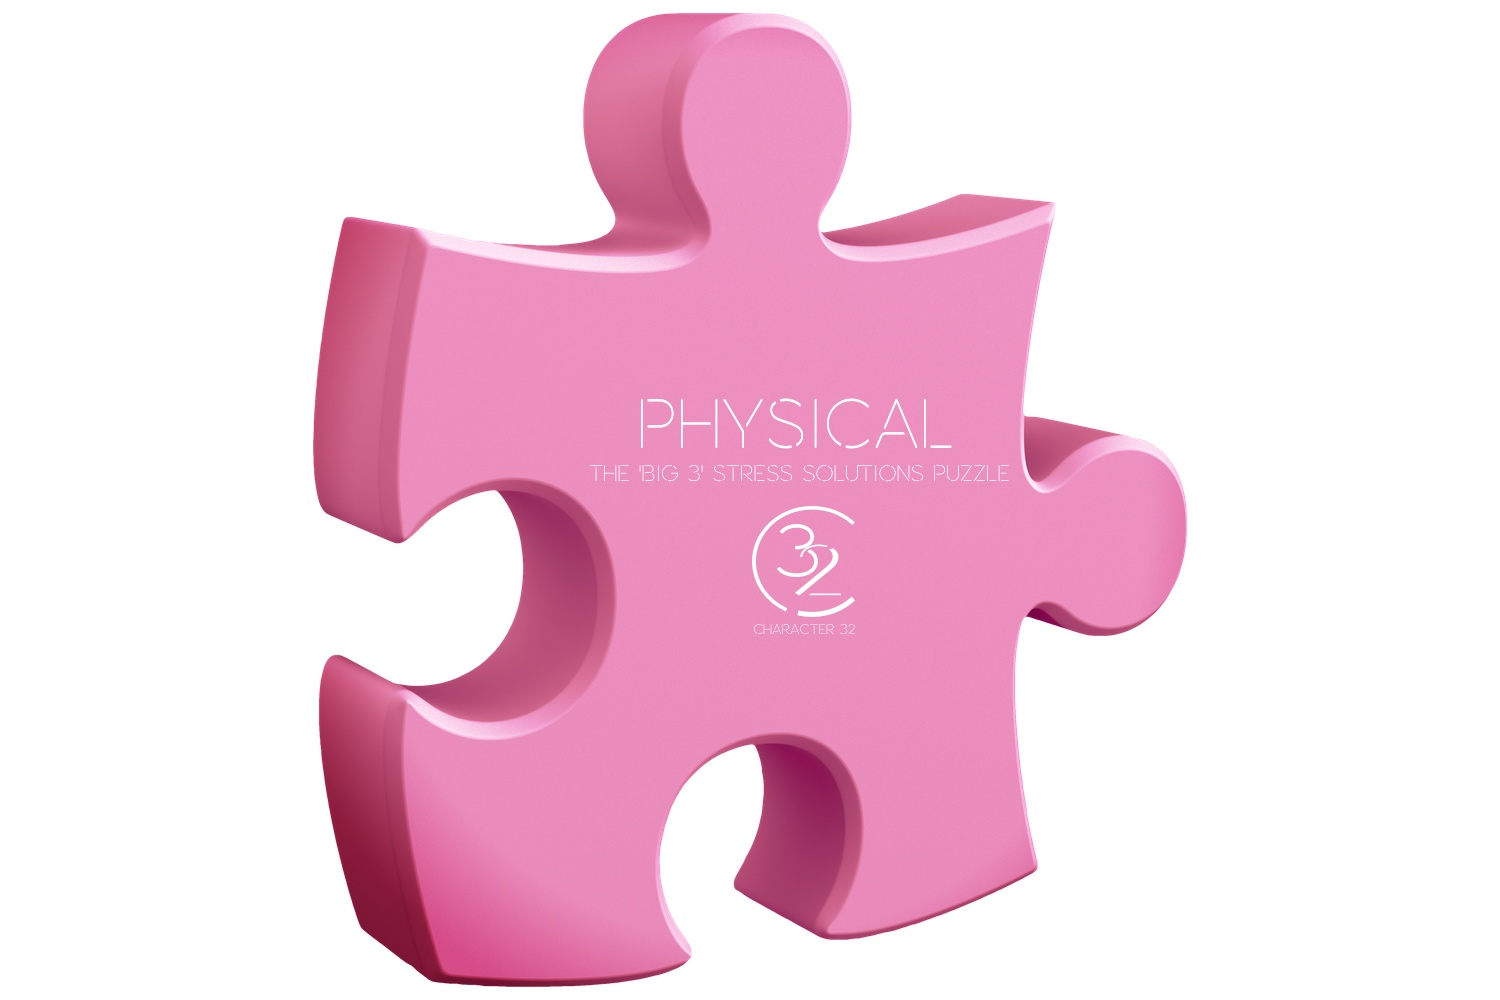 physical-stress-management-coping-dealing-with-stress-signs-and-symptoms-the-big-3-puzzle-character-32-c32